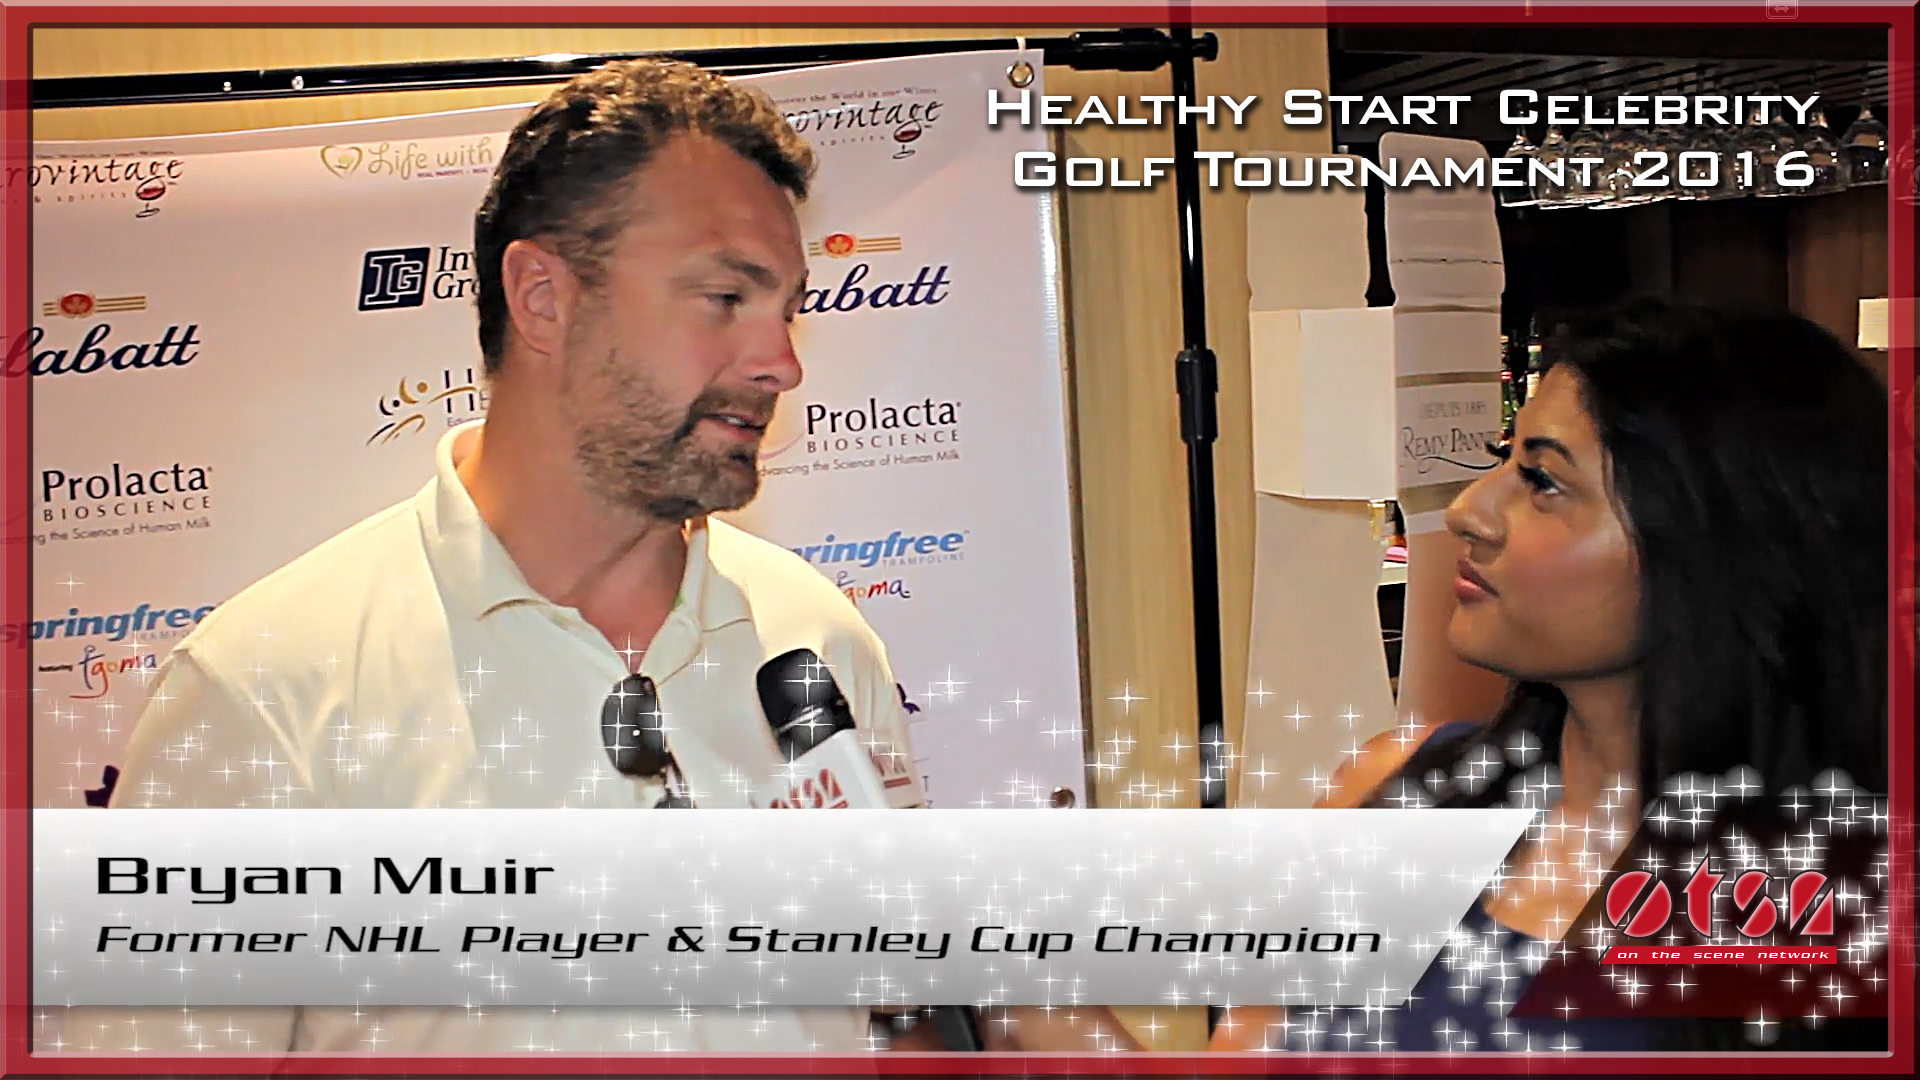 Healthy Start Celebrity Golf Tournament 2016